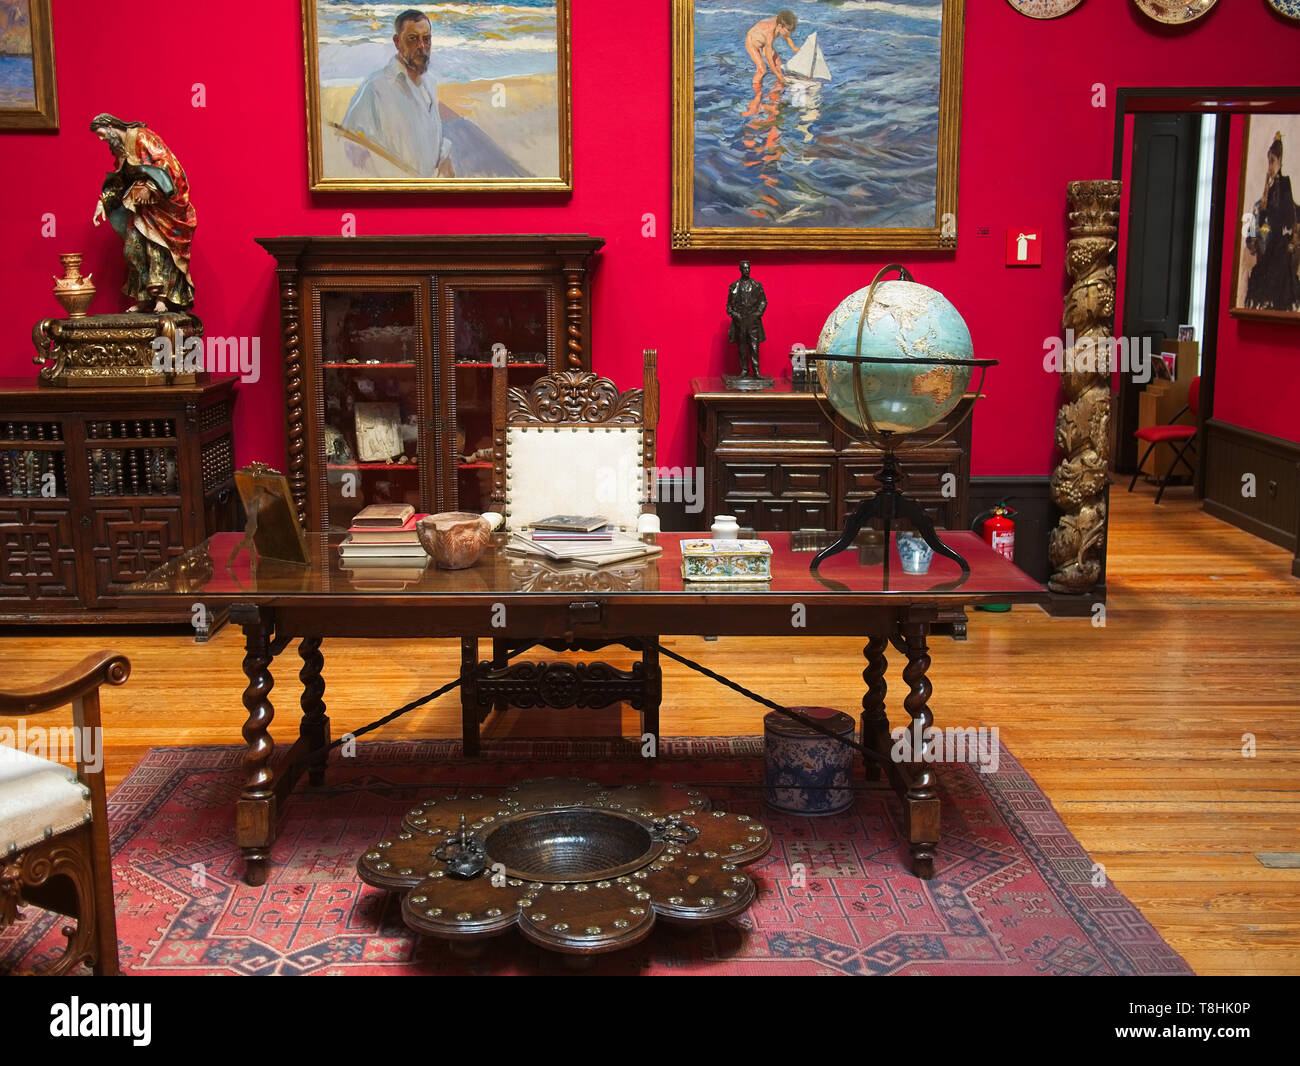 Swell Study At The Sorolla Museum Antique Furniture Such As Ibusinesslaw Wood Chair Design Ideas Ibusinesslaworg